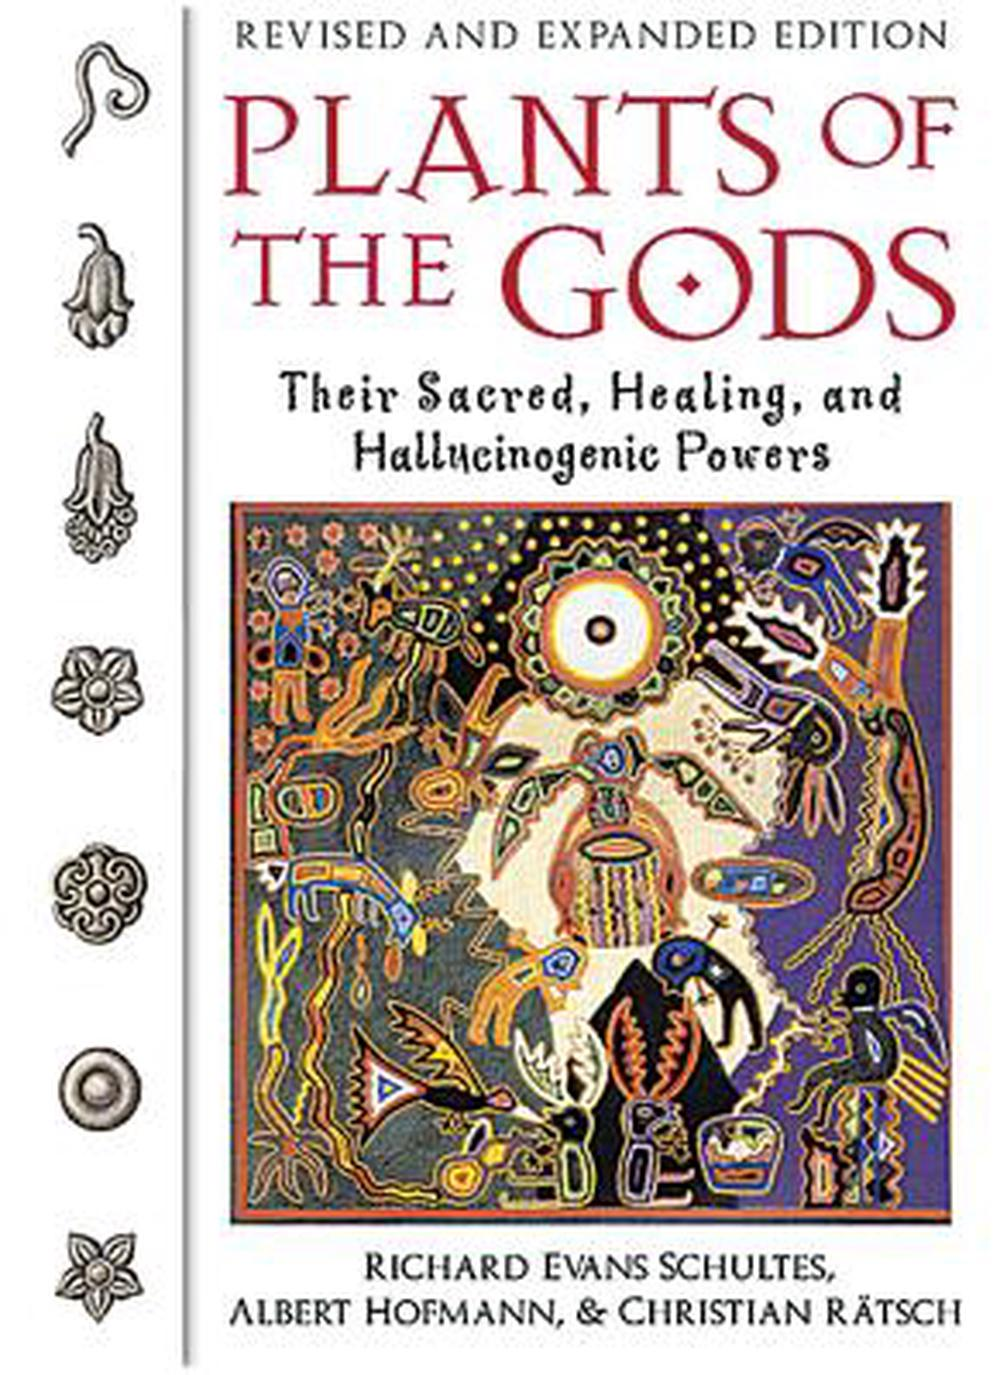 Plants of the Gods: Their Sacred, Healing, and Hallucinogenic Powers